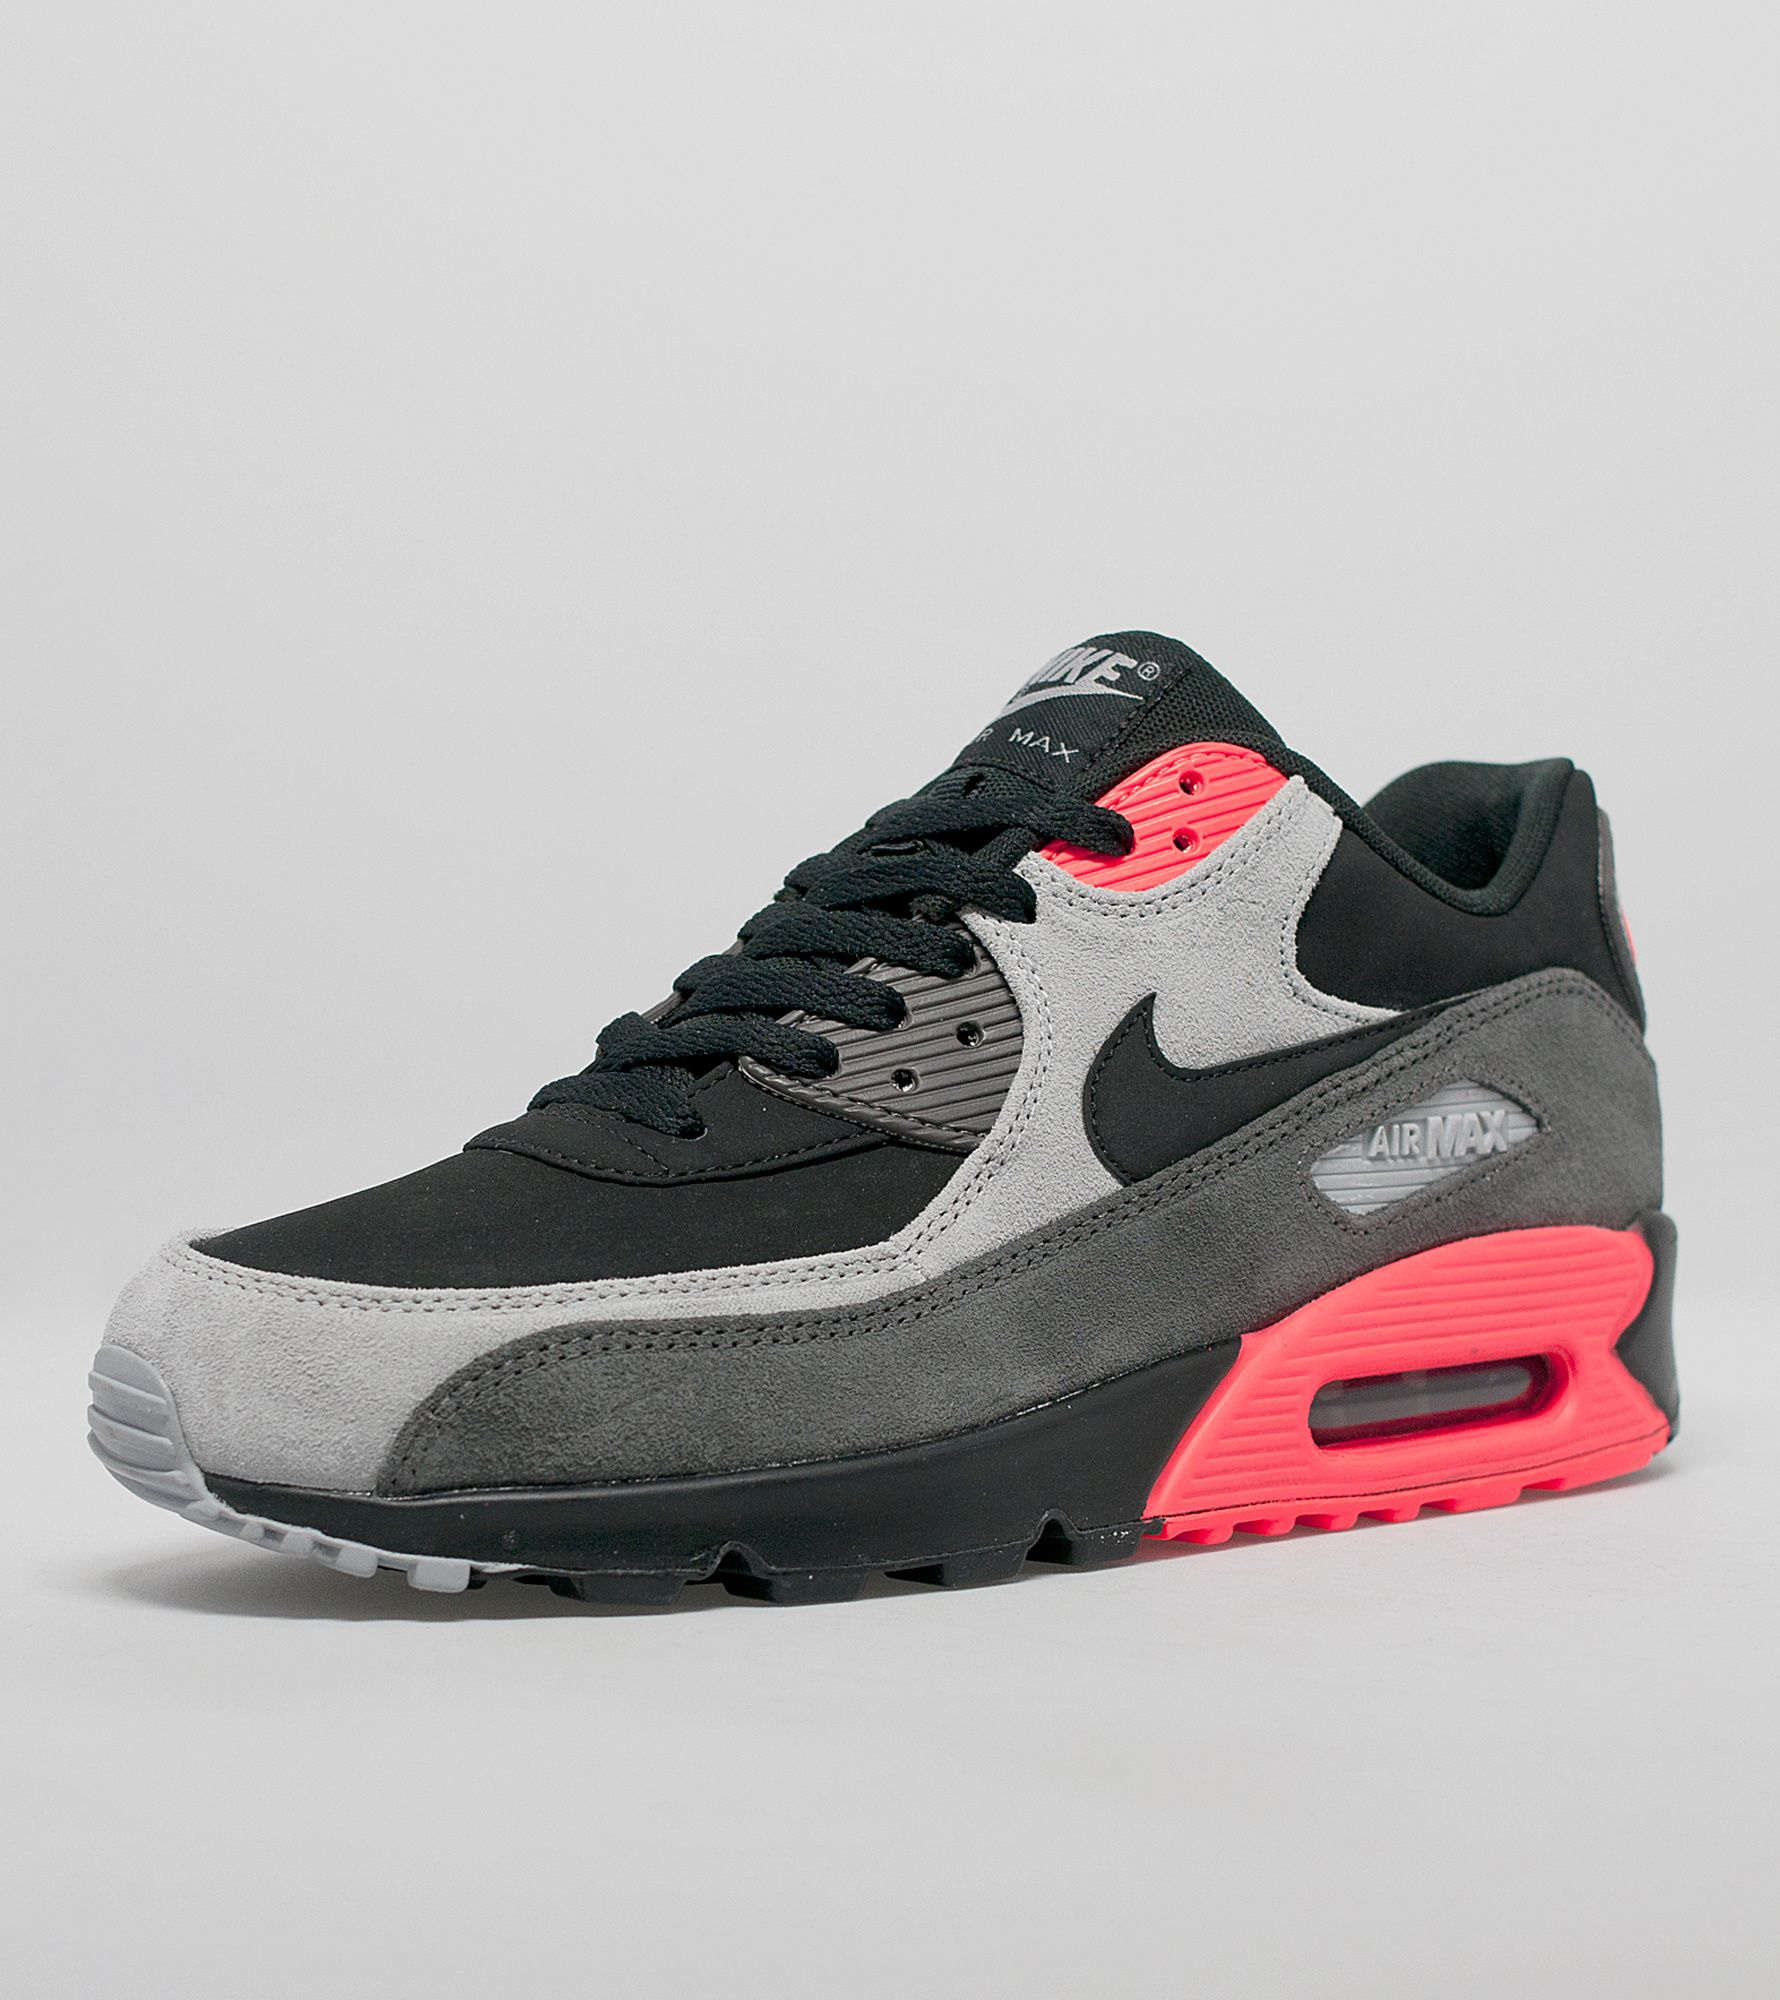 hot sale online 4f830 ac3f5 ... buy nike air max 90 3f7cc be81c ...